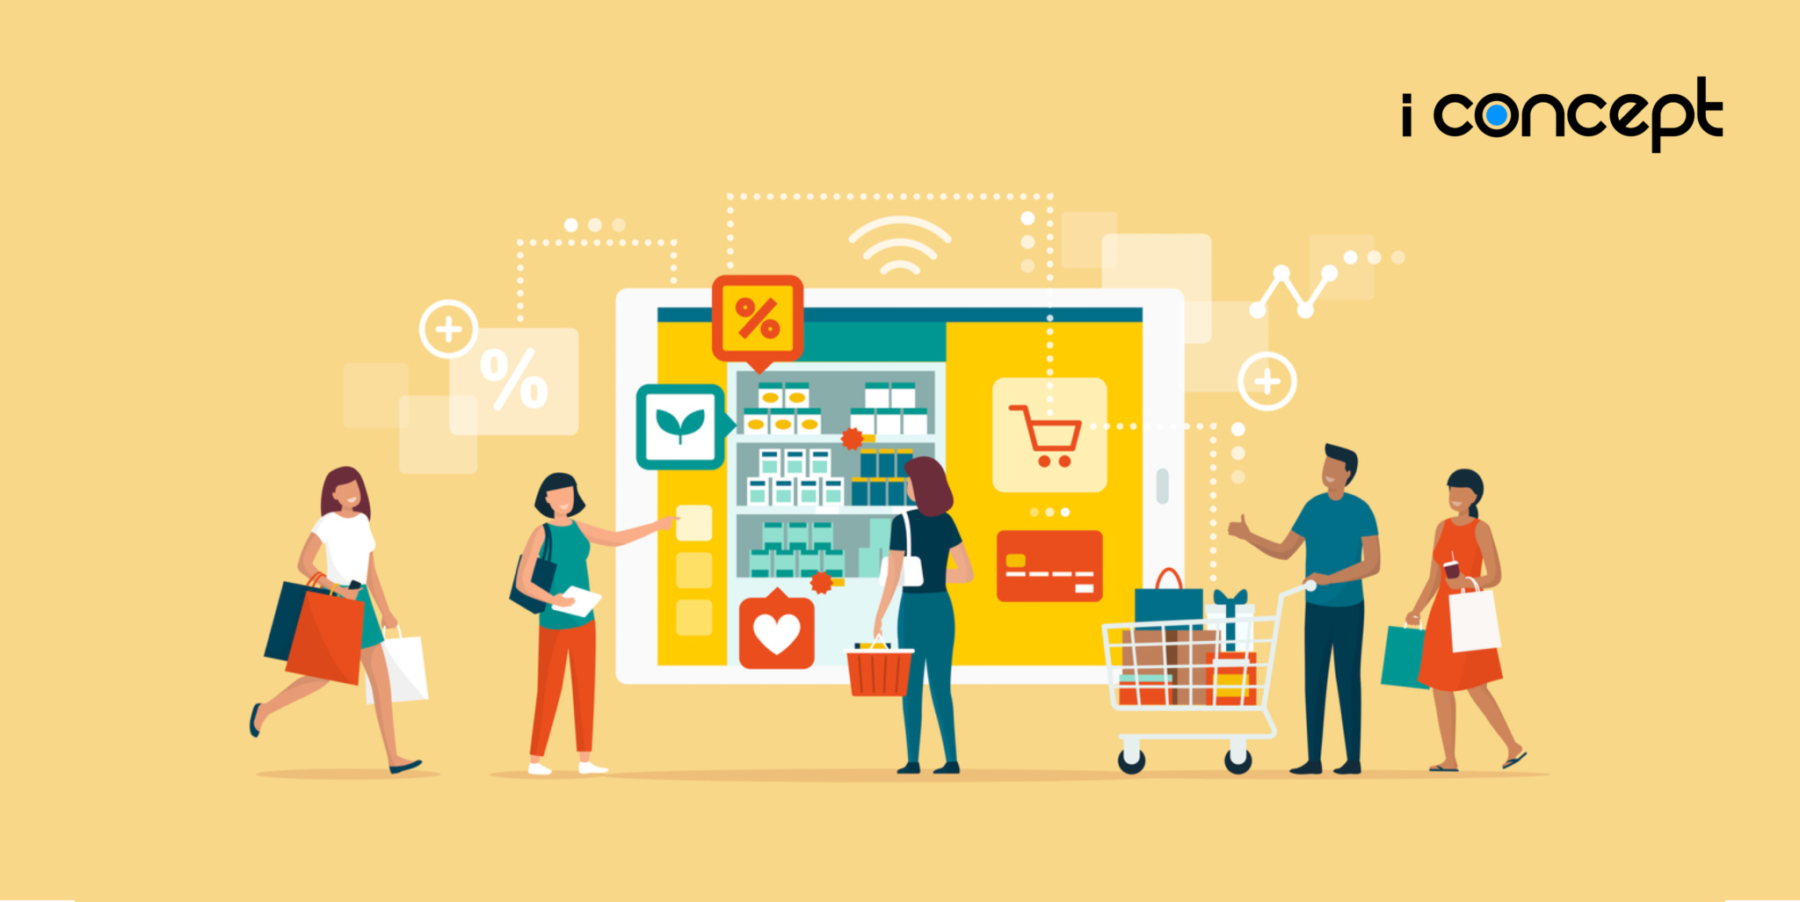 5 ECommerce Trends To Look Out For in 2020